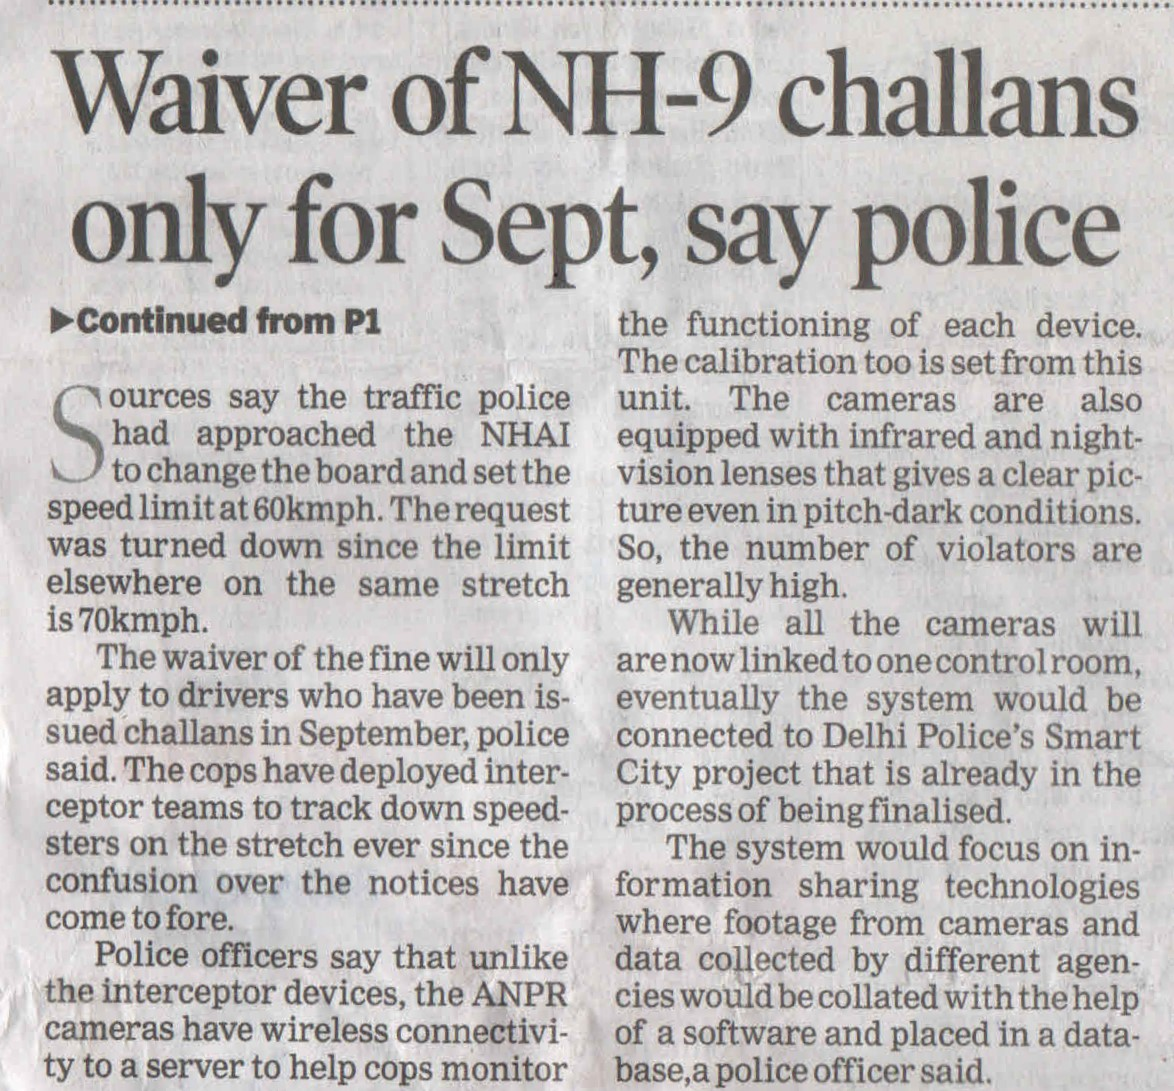 Waiver of NH-9 challans only for Sept. say police